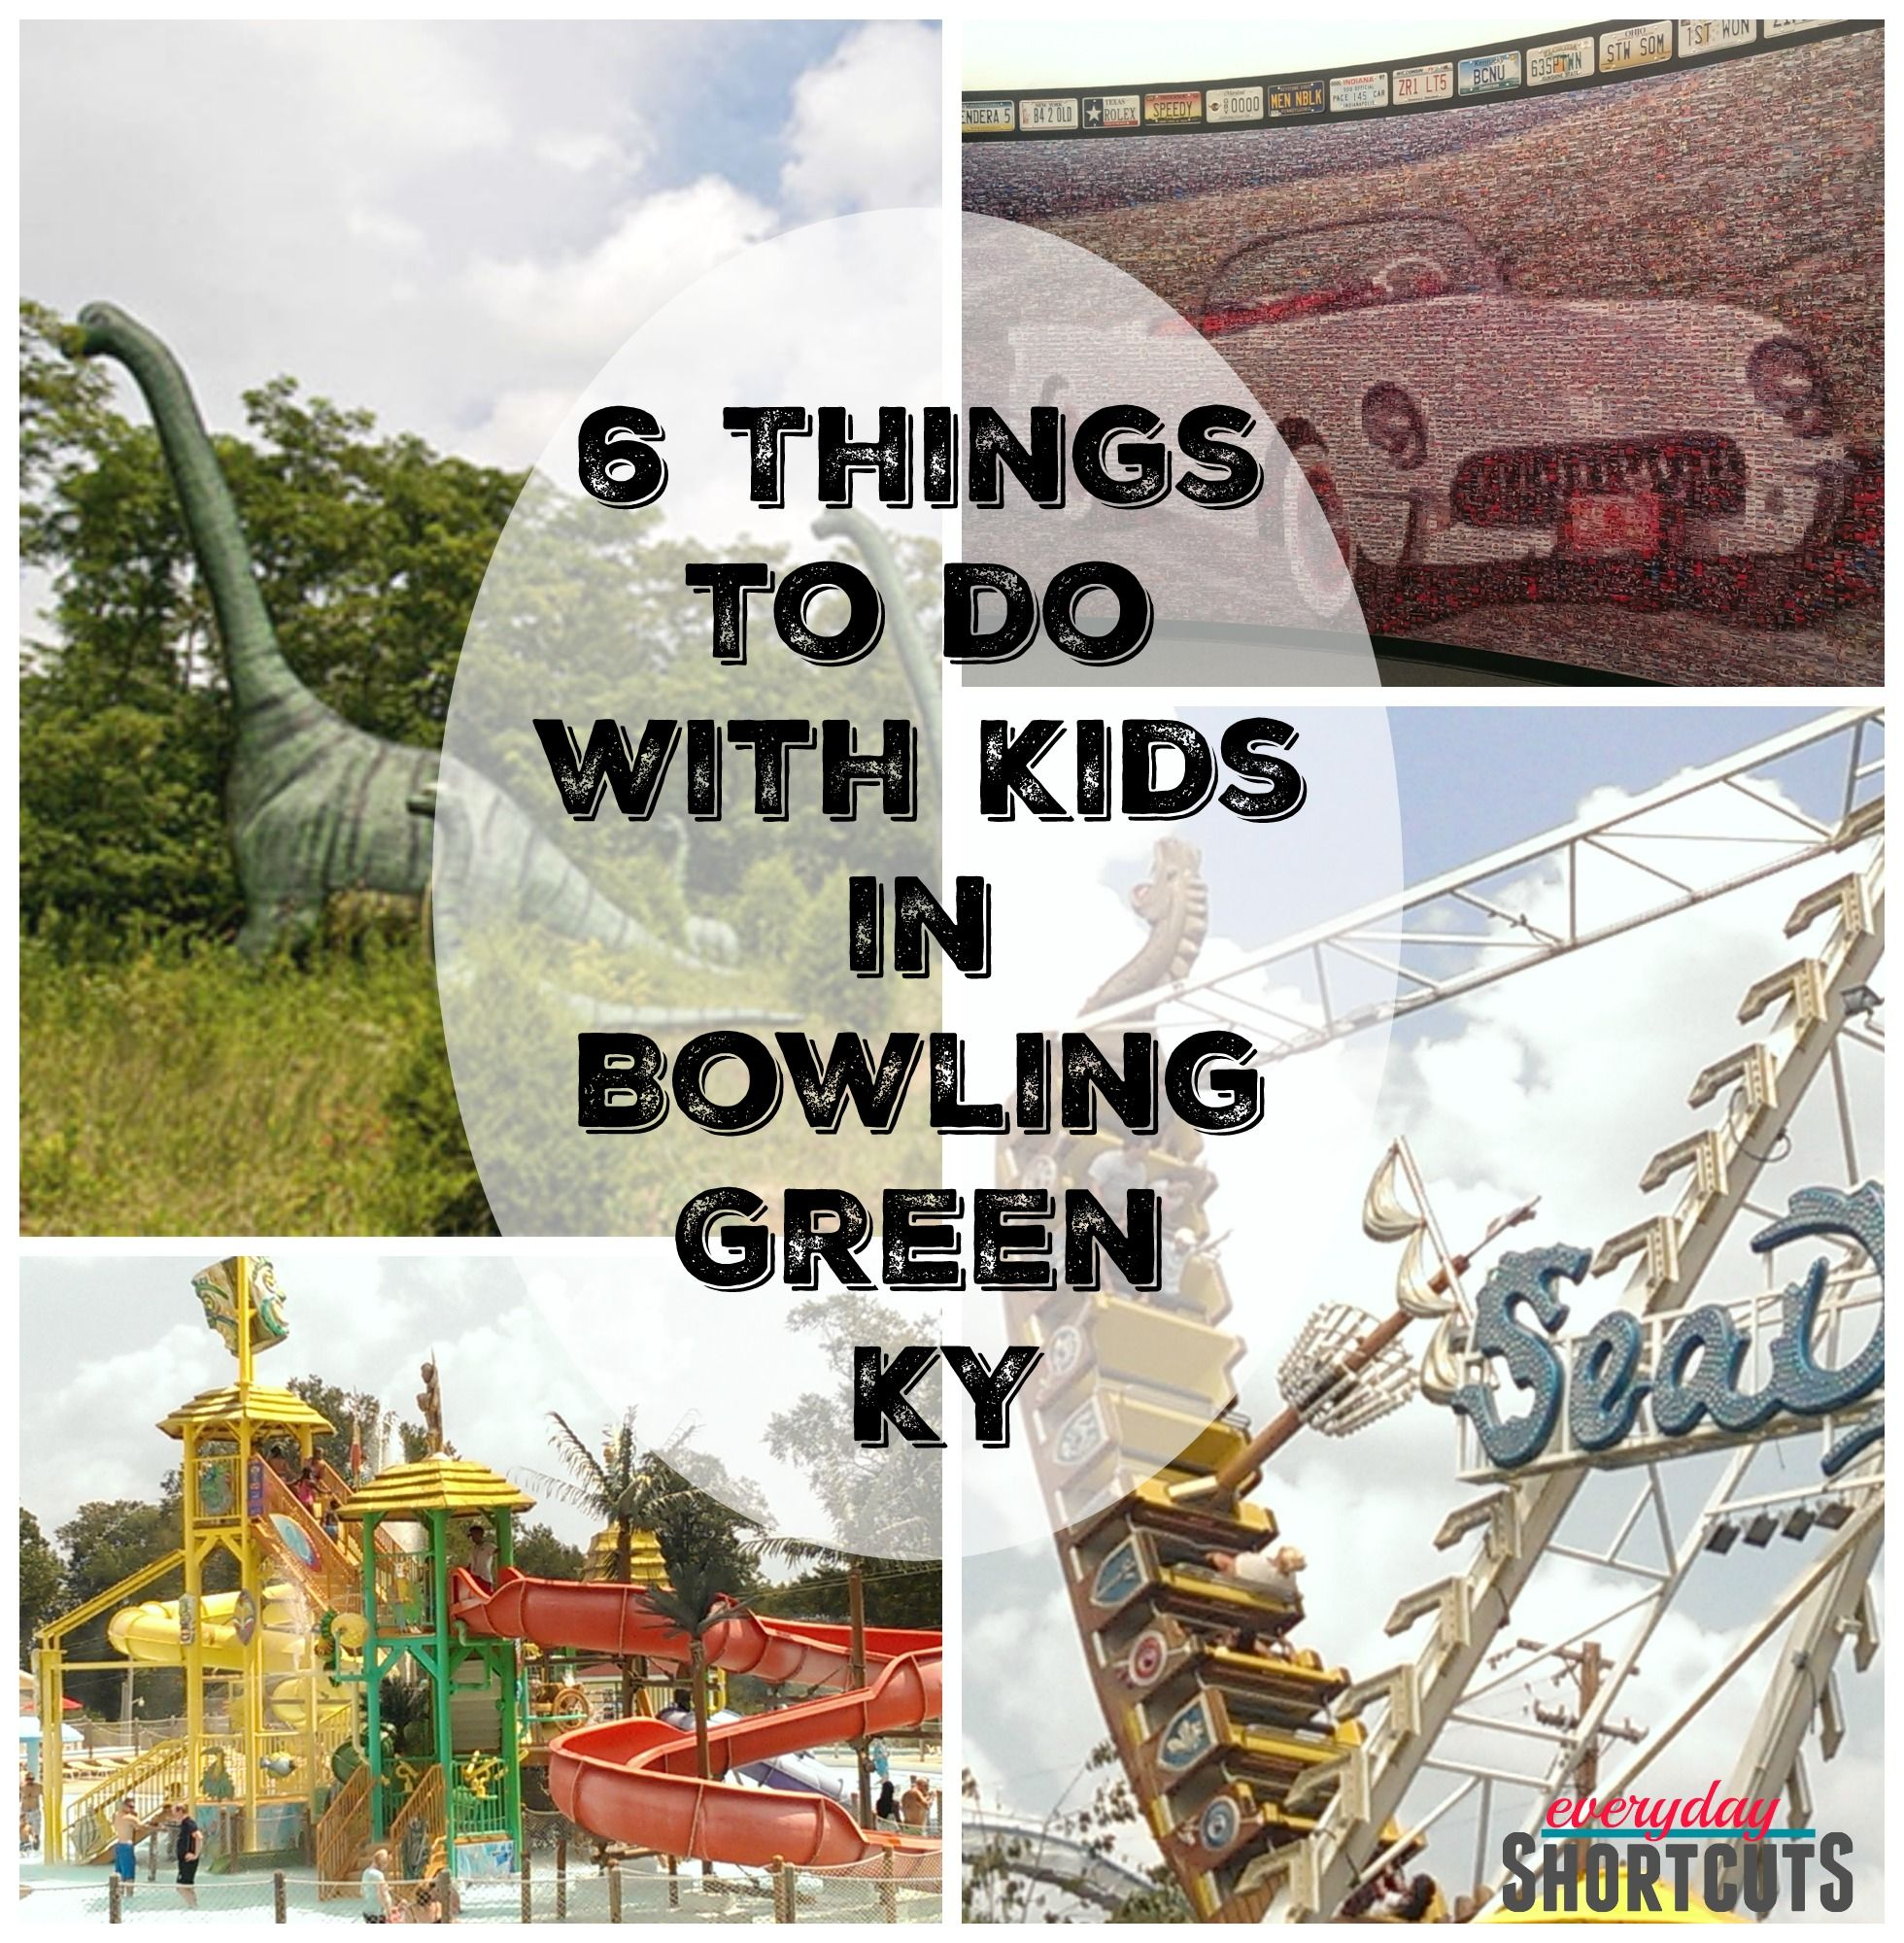 6 Things To Do With Kids In Bowling Green Ky Everyday Shortcuts Weekend Getaways With Kids Kentucky Vacation Kentucky Travel